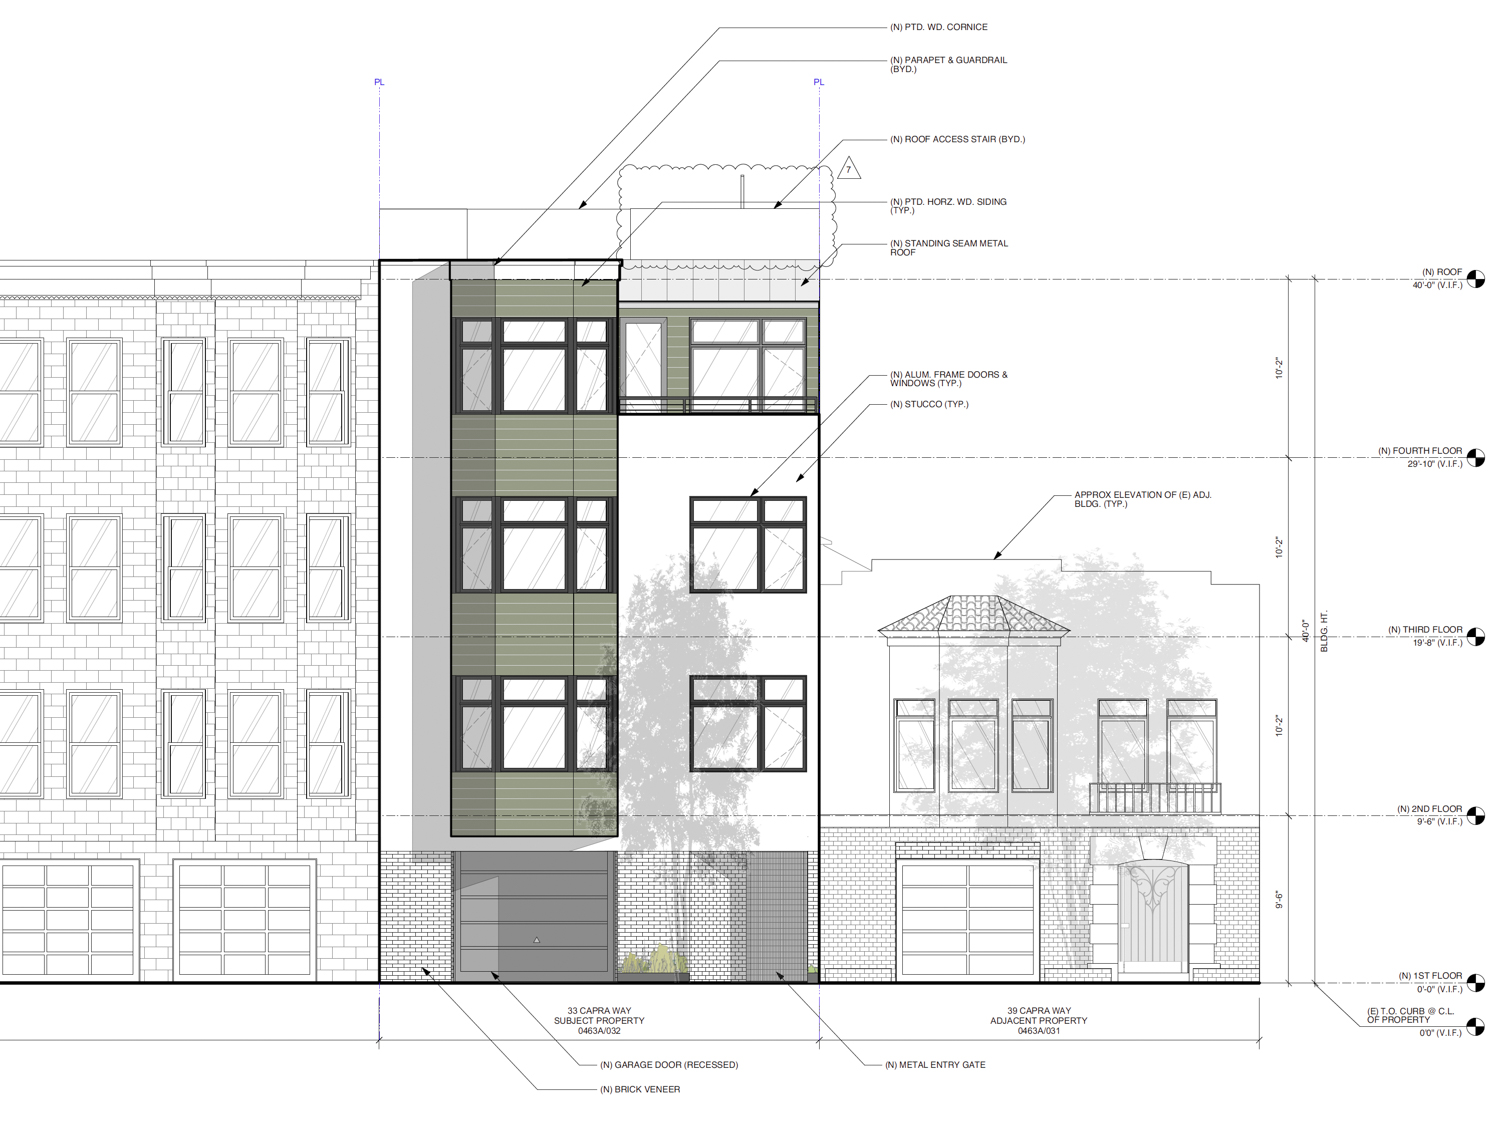 33-37 Capra Way facade elevation, drawing by John Lum Architecture